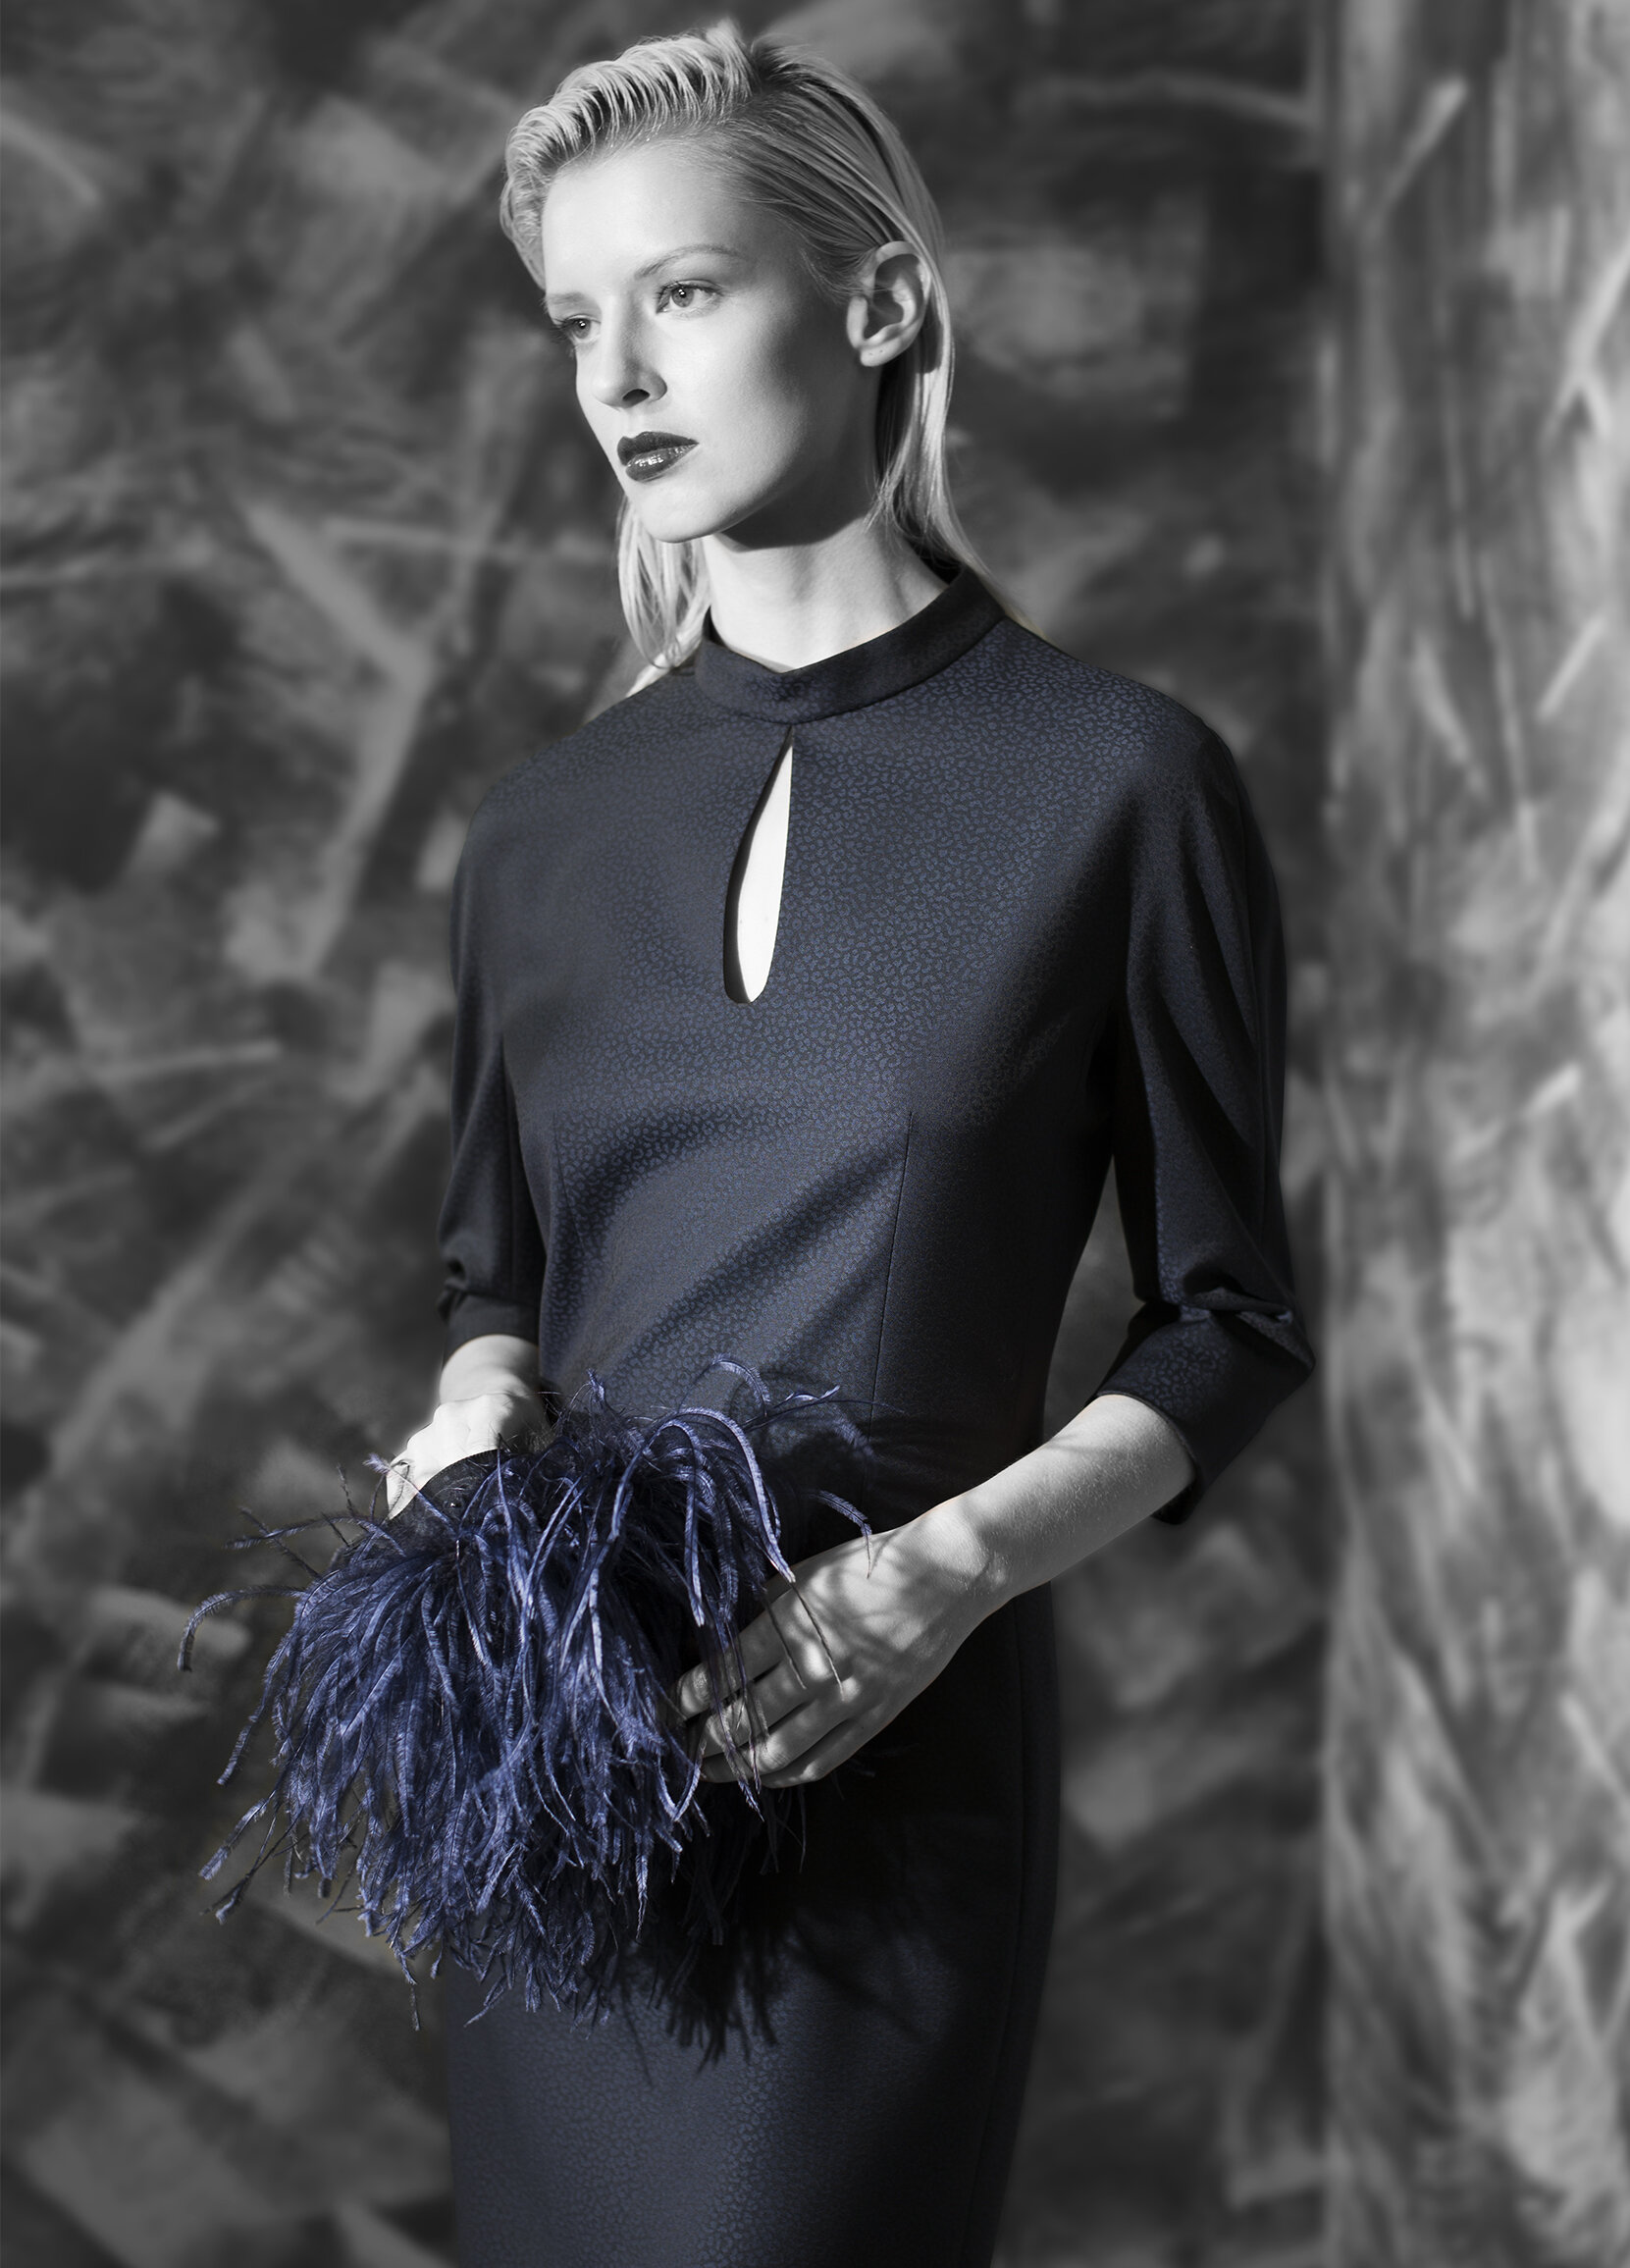 Abstract jacquard superfine wool mock neck dress with detachable feather sleeve cuffs  onyx midnight opal